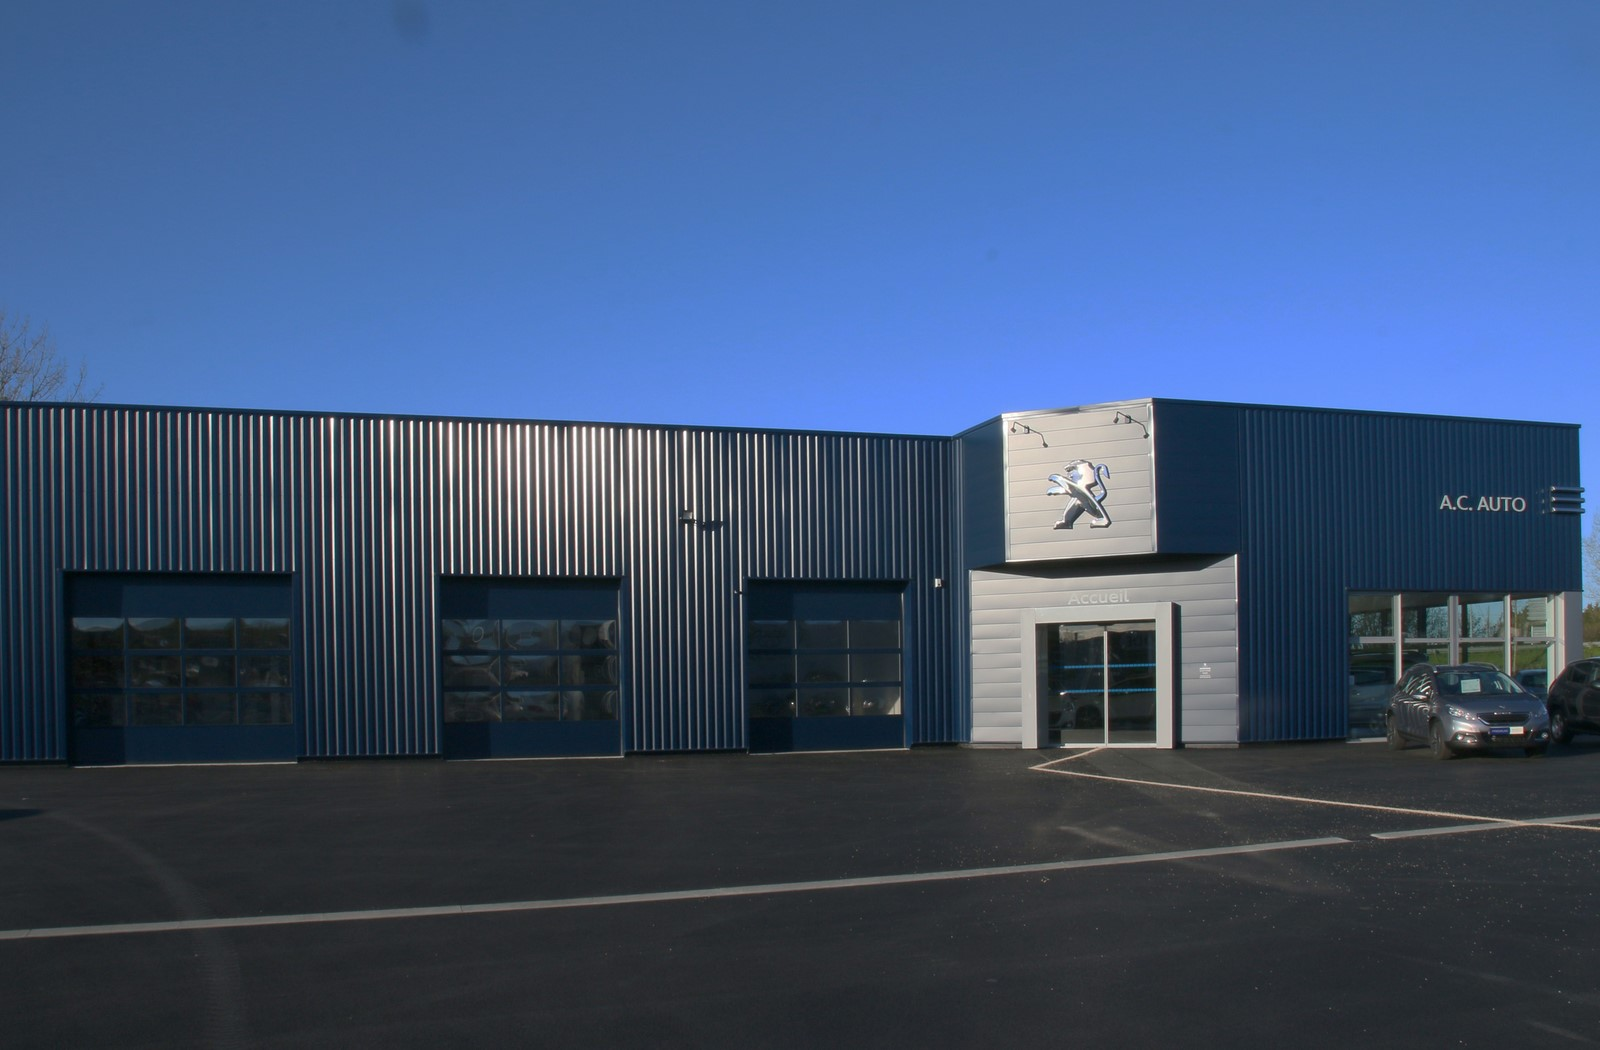 Ouverture garage peugeot la chataigneraie site for Garage peugeot libourne